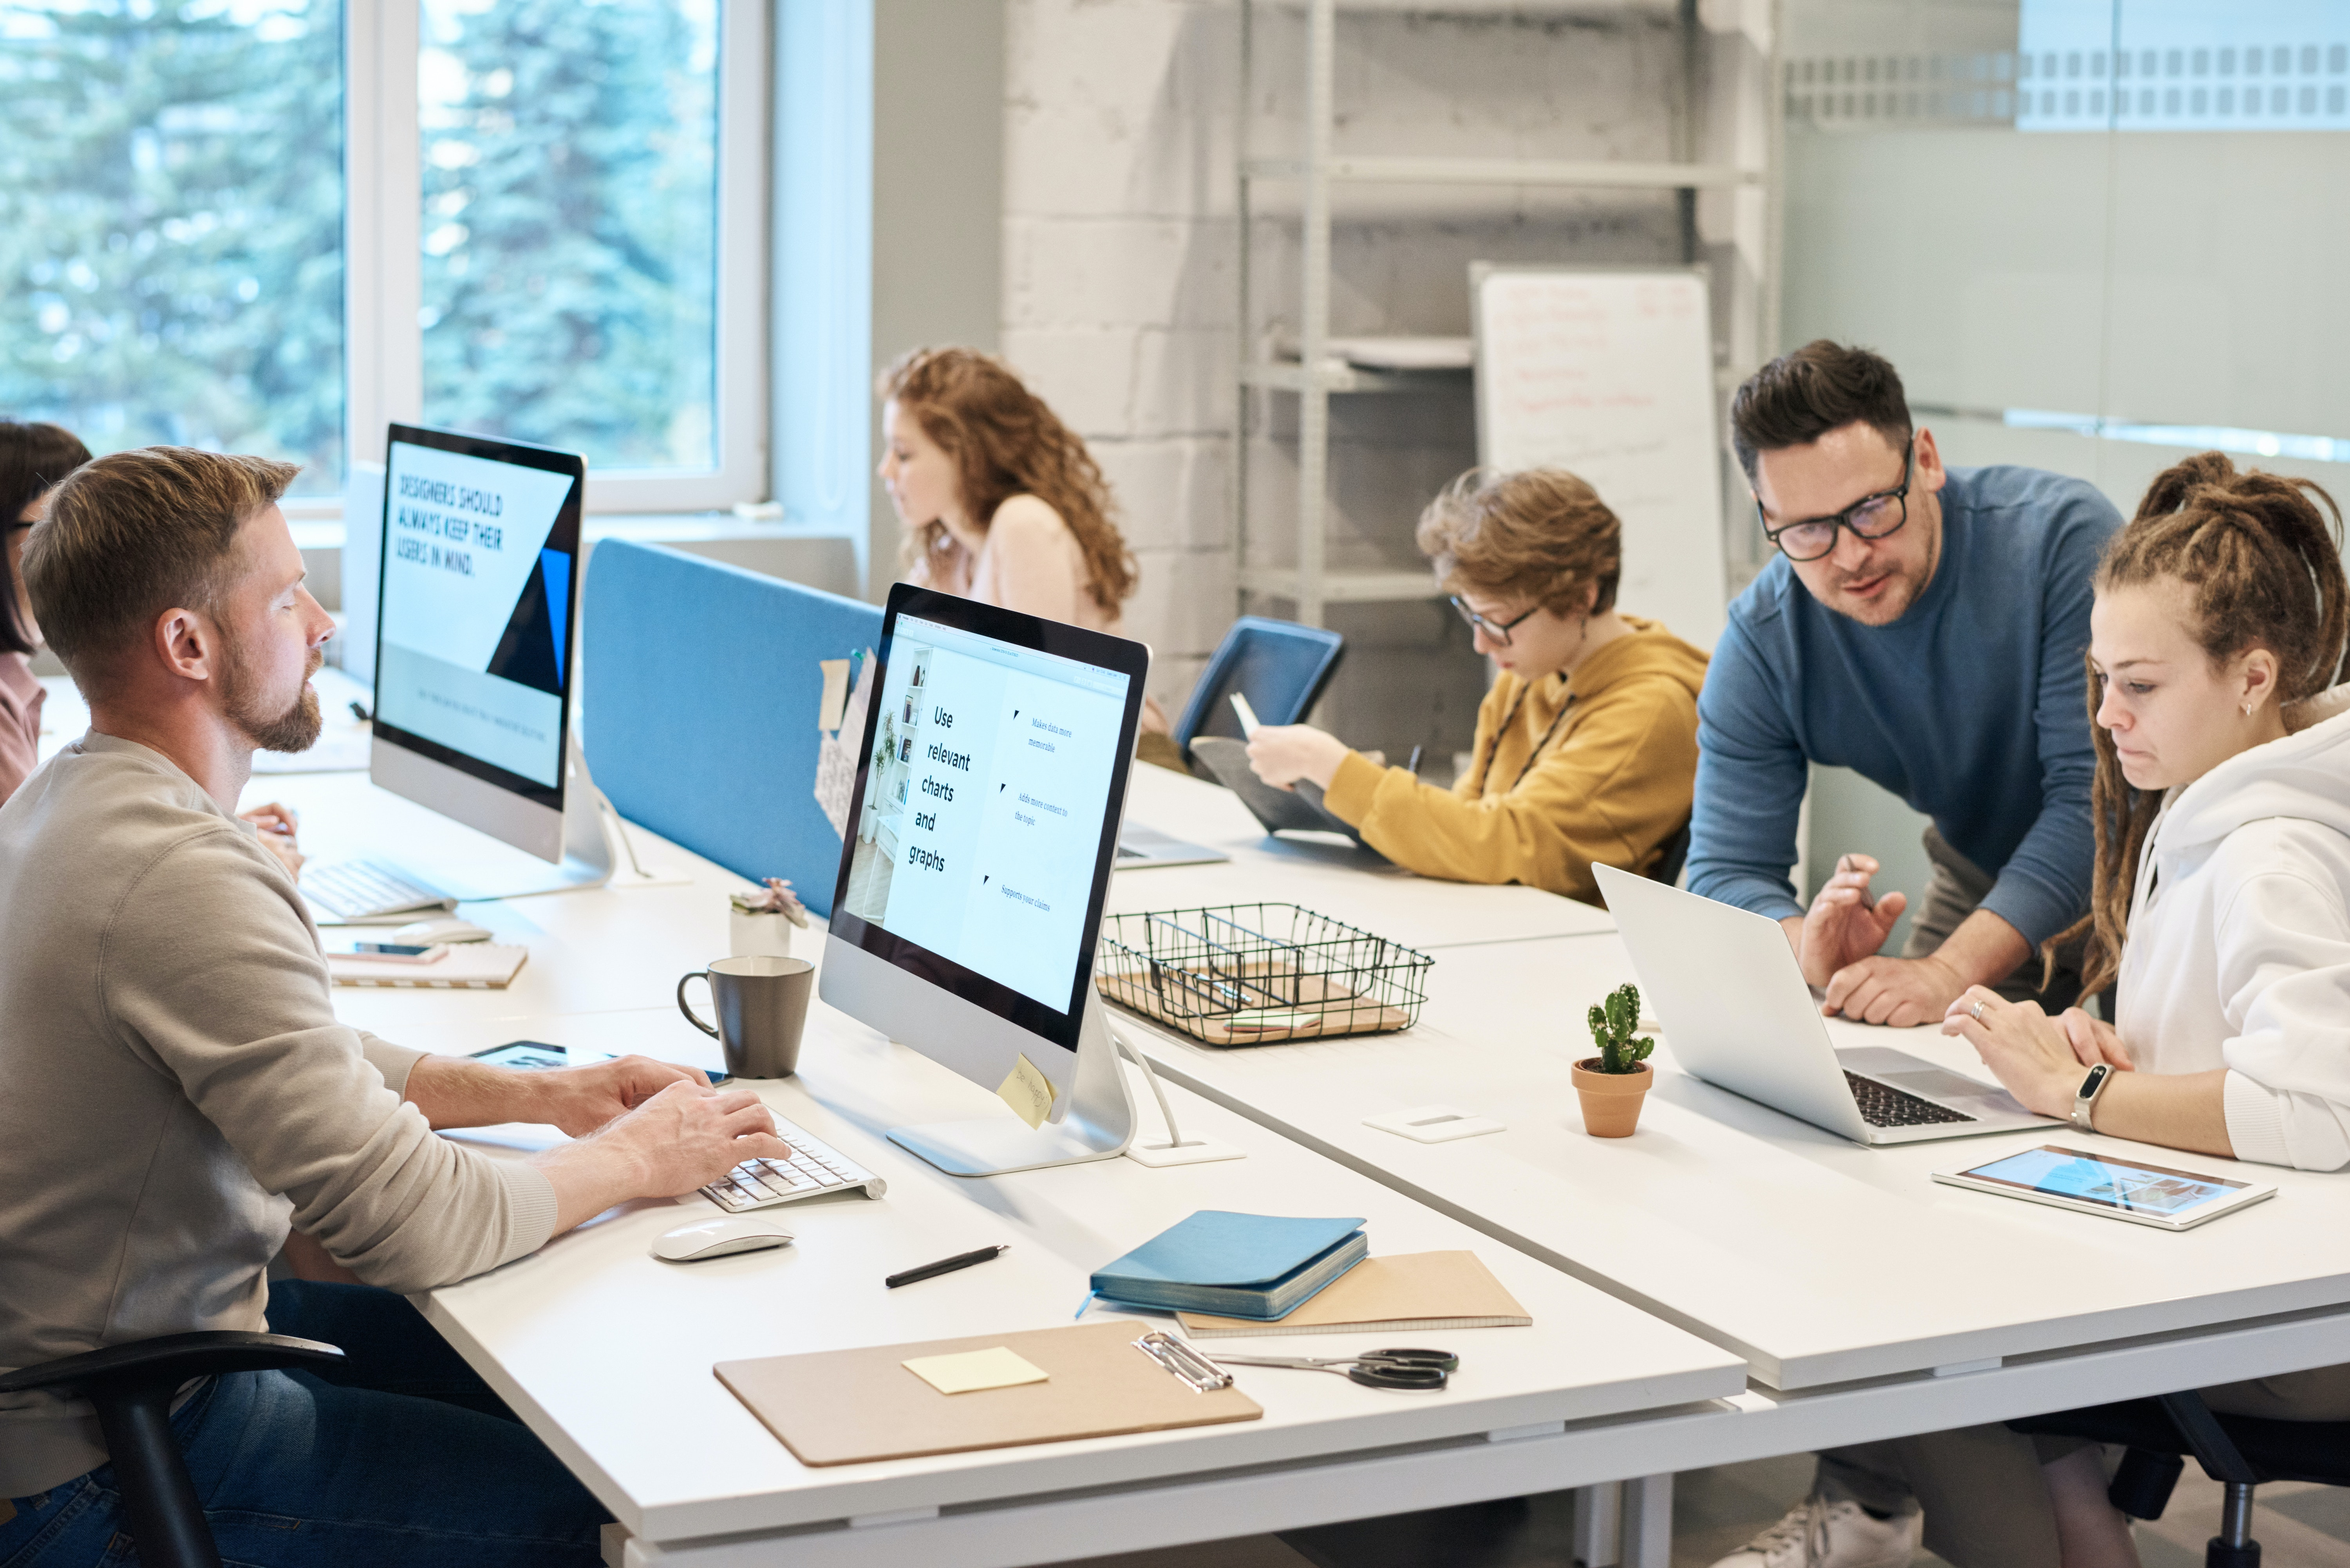 People sitting and talking around an office room computer table